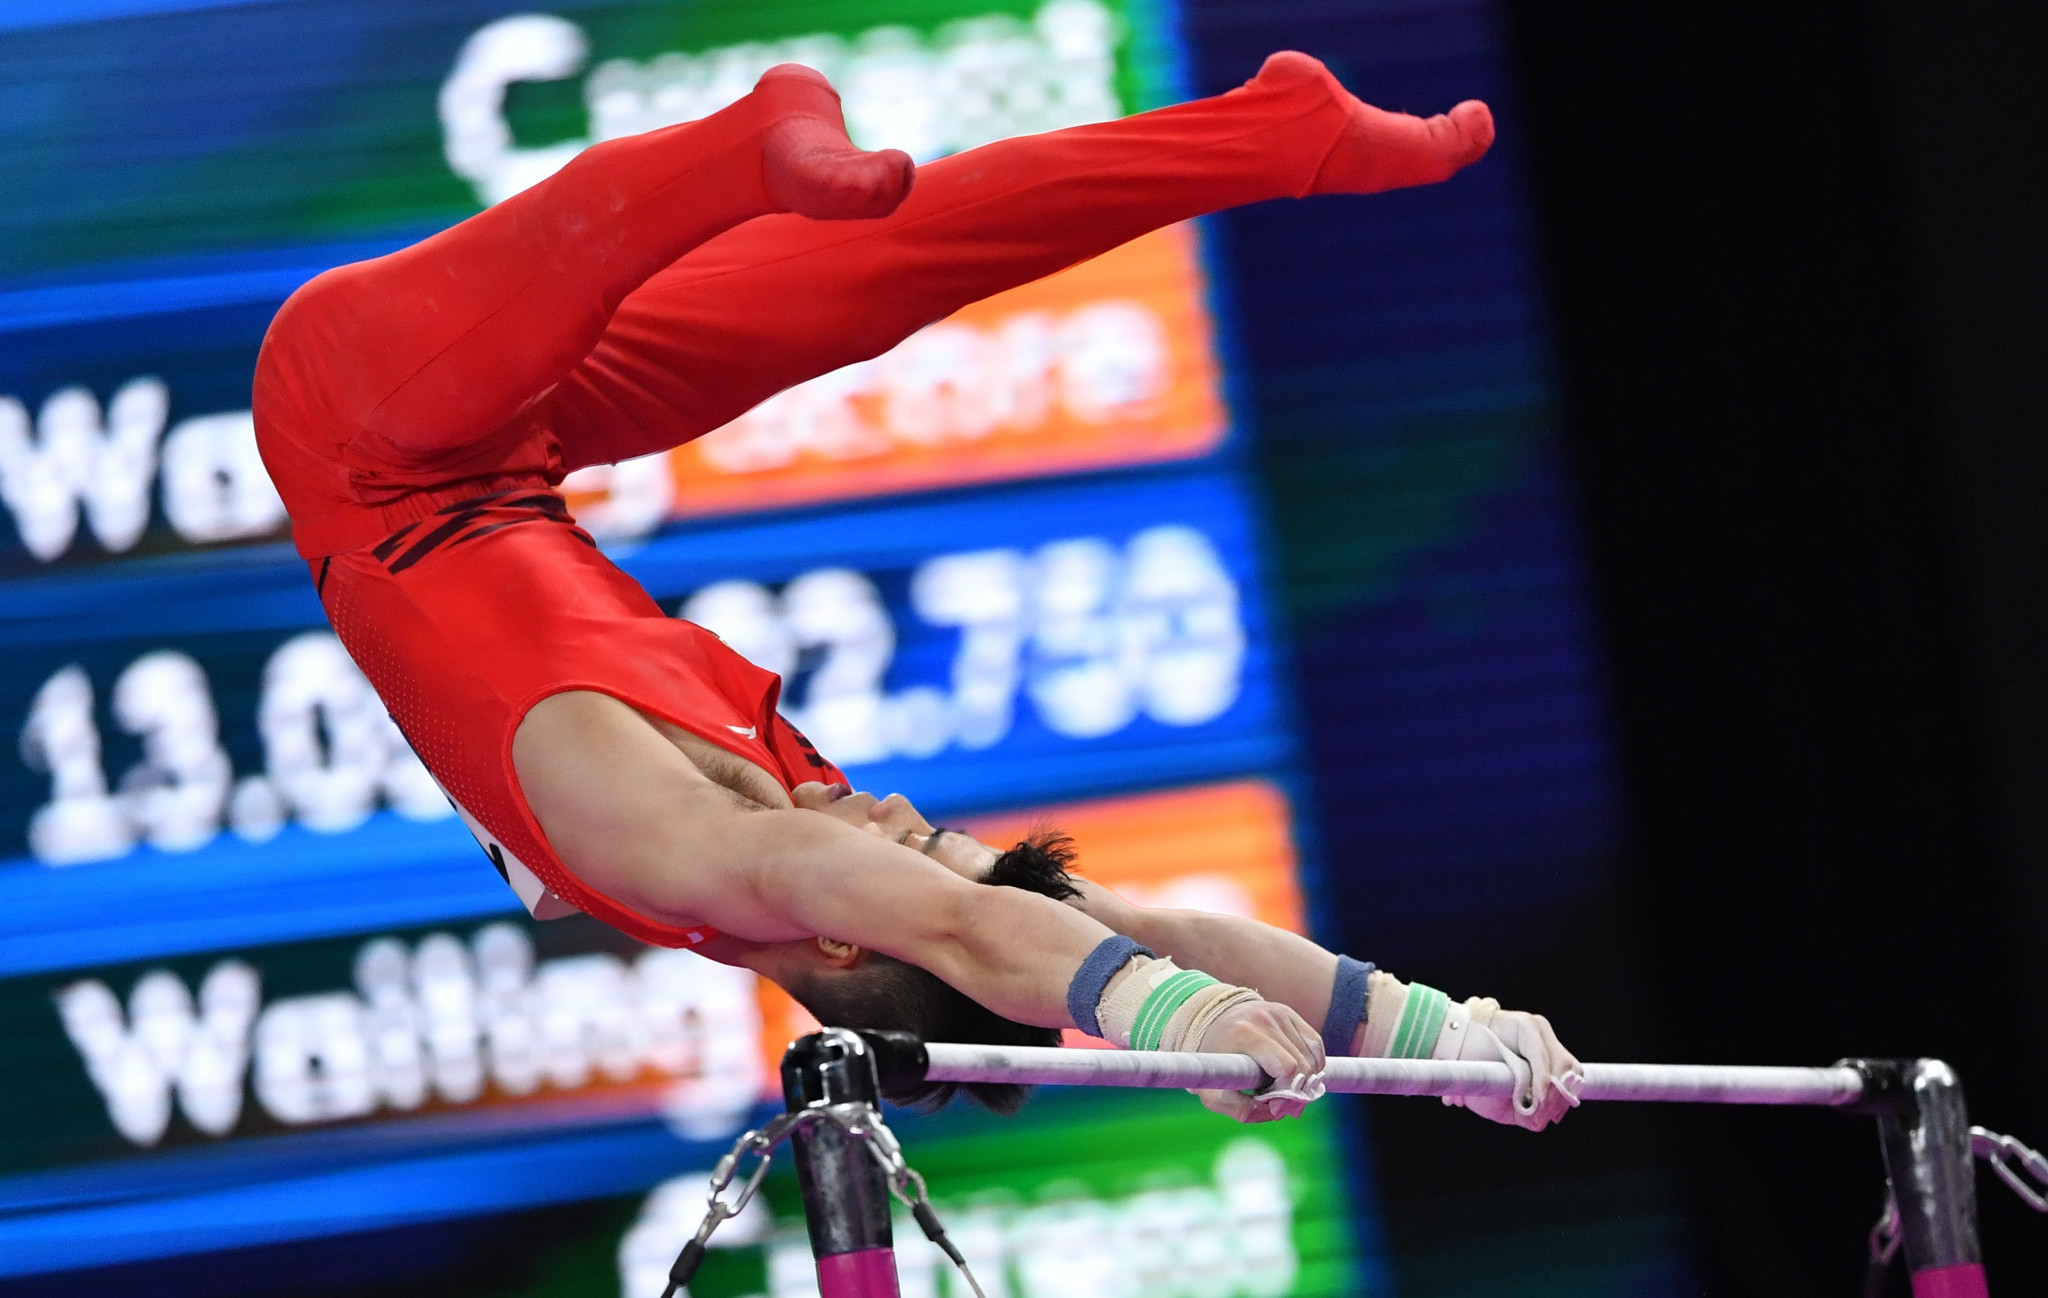 Artistic gymnastics was among a number of sports in which medals were first awarded today with China's Lin Chaopan taking the men's individual all-around title ©Getty Images